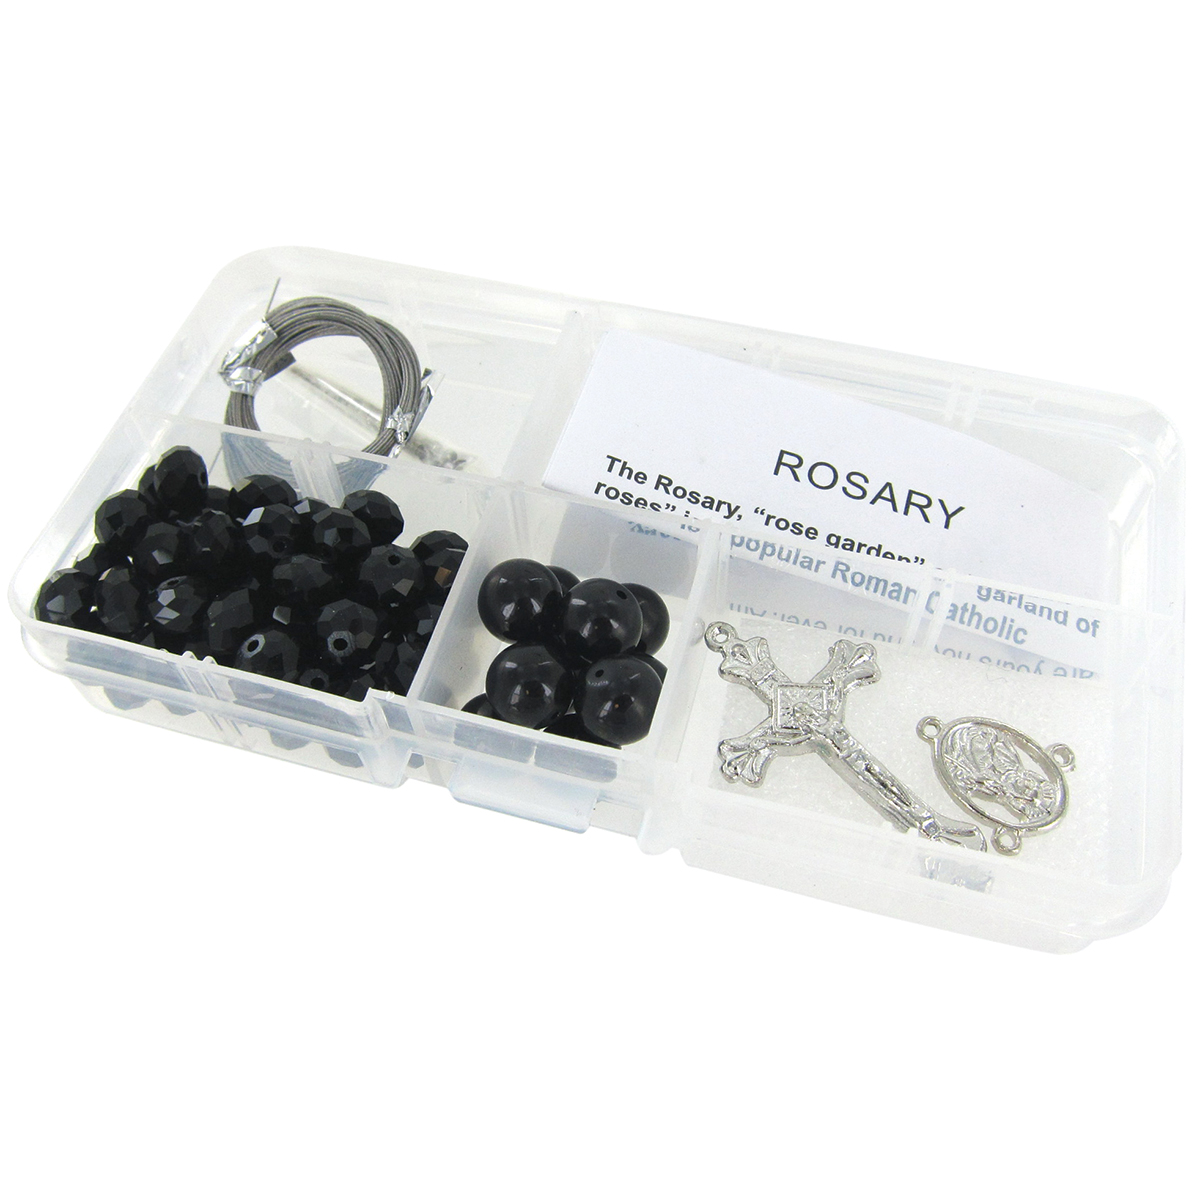 Crystal & Pearl Rosary Bead Kit-Black Crystal Beads & Black Pearls